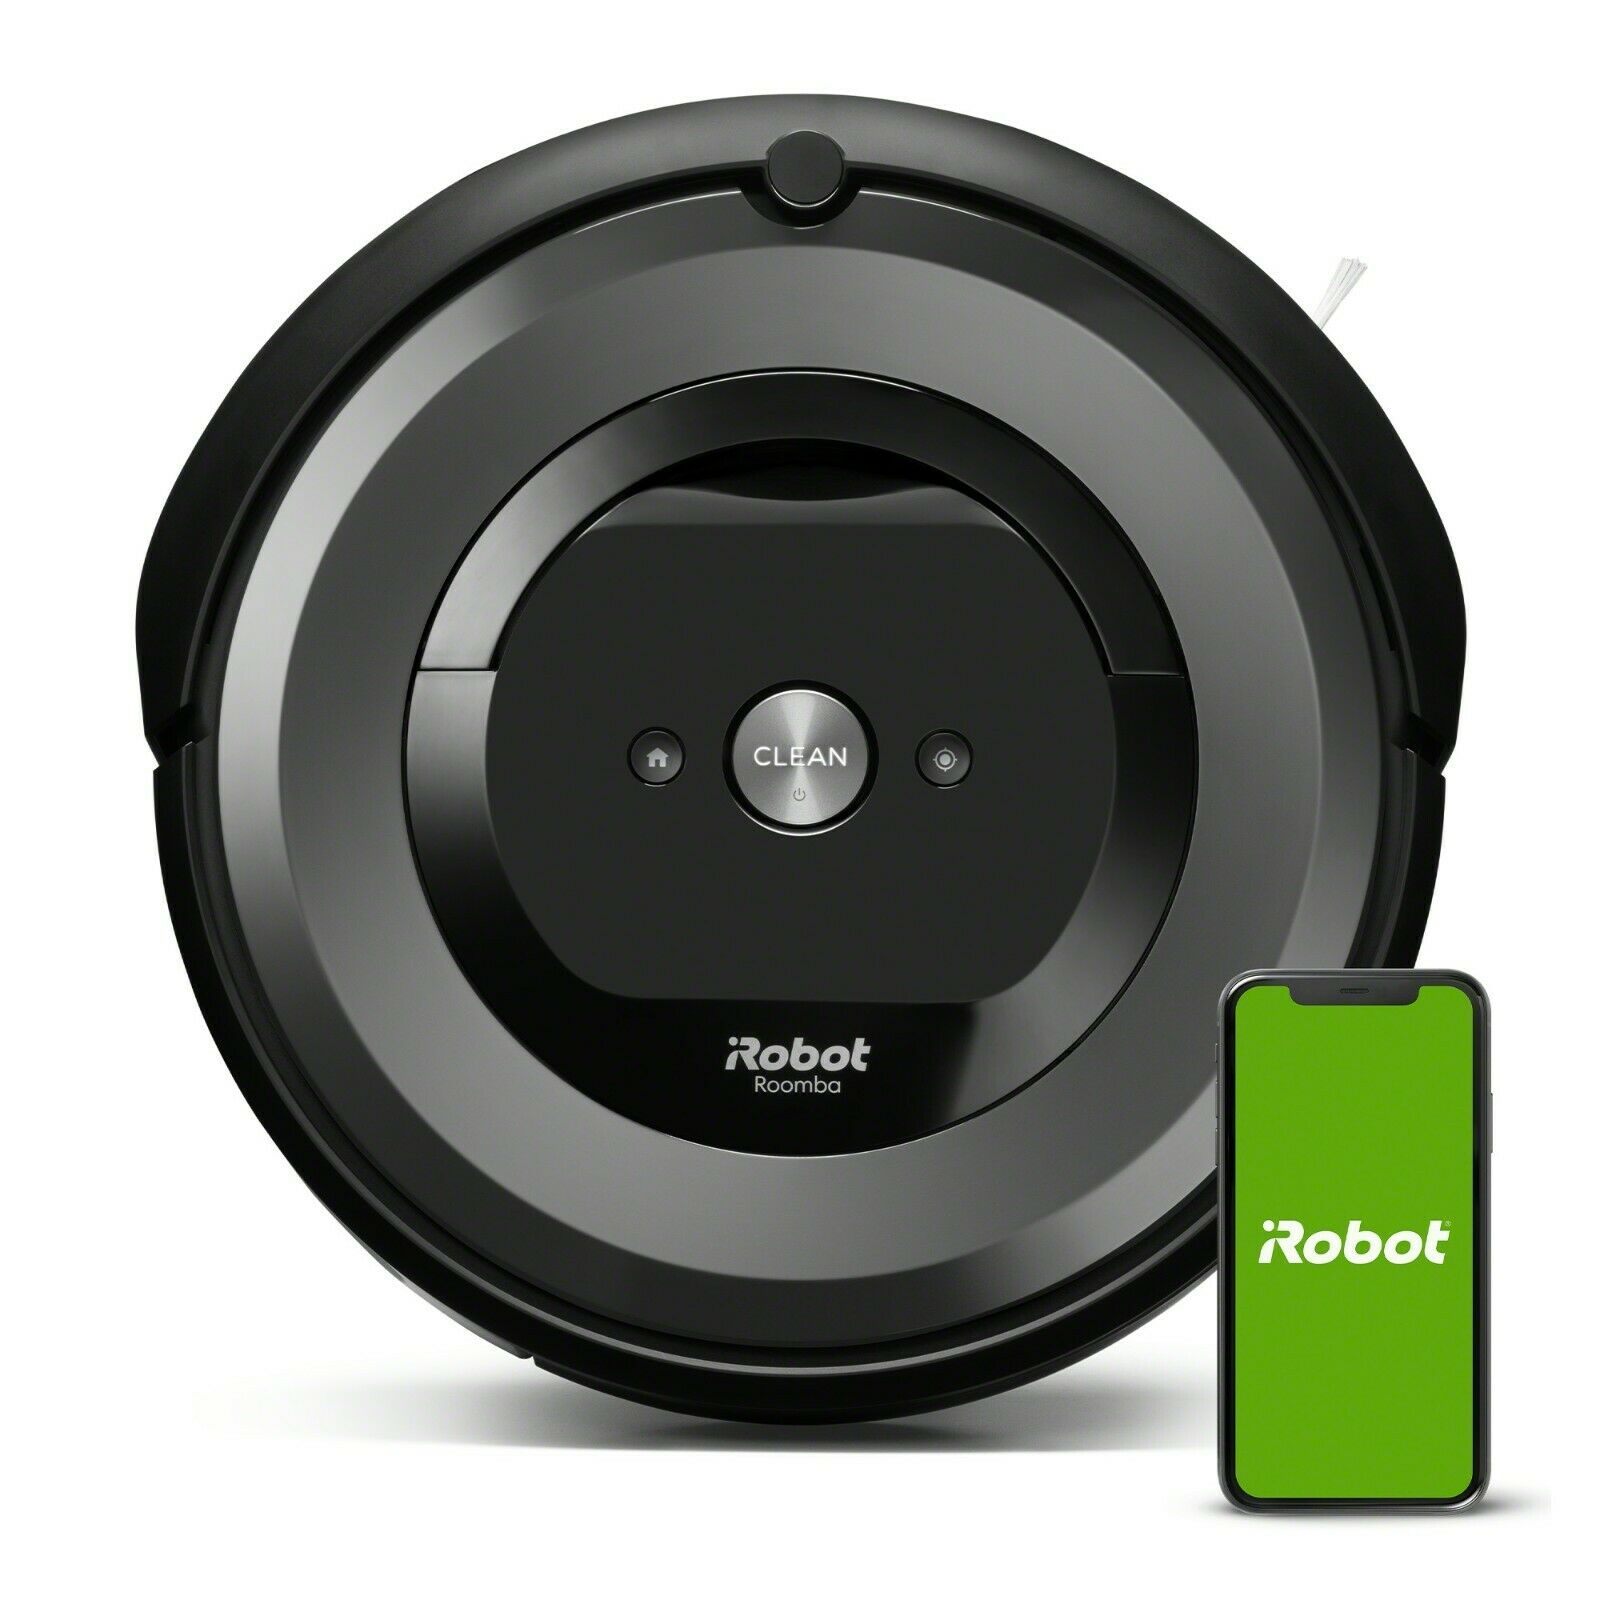 irobot-roomba-e6134-vacuum-cleaning-robot-manufacturer-certified-refurbished